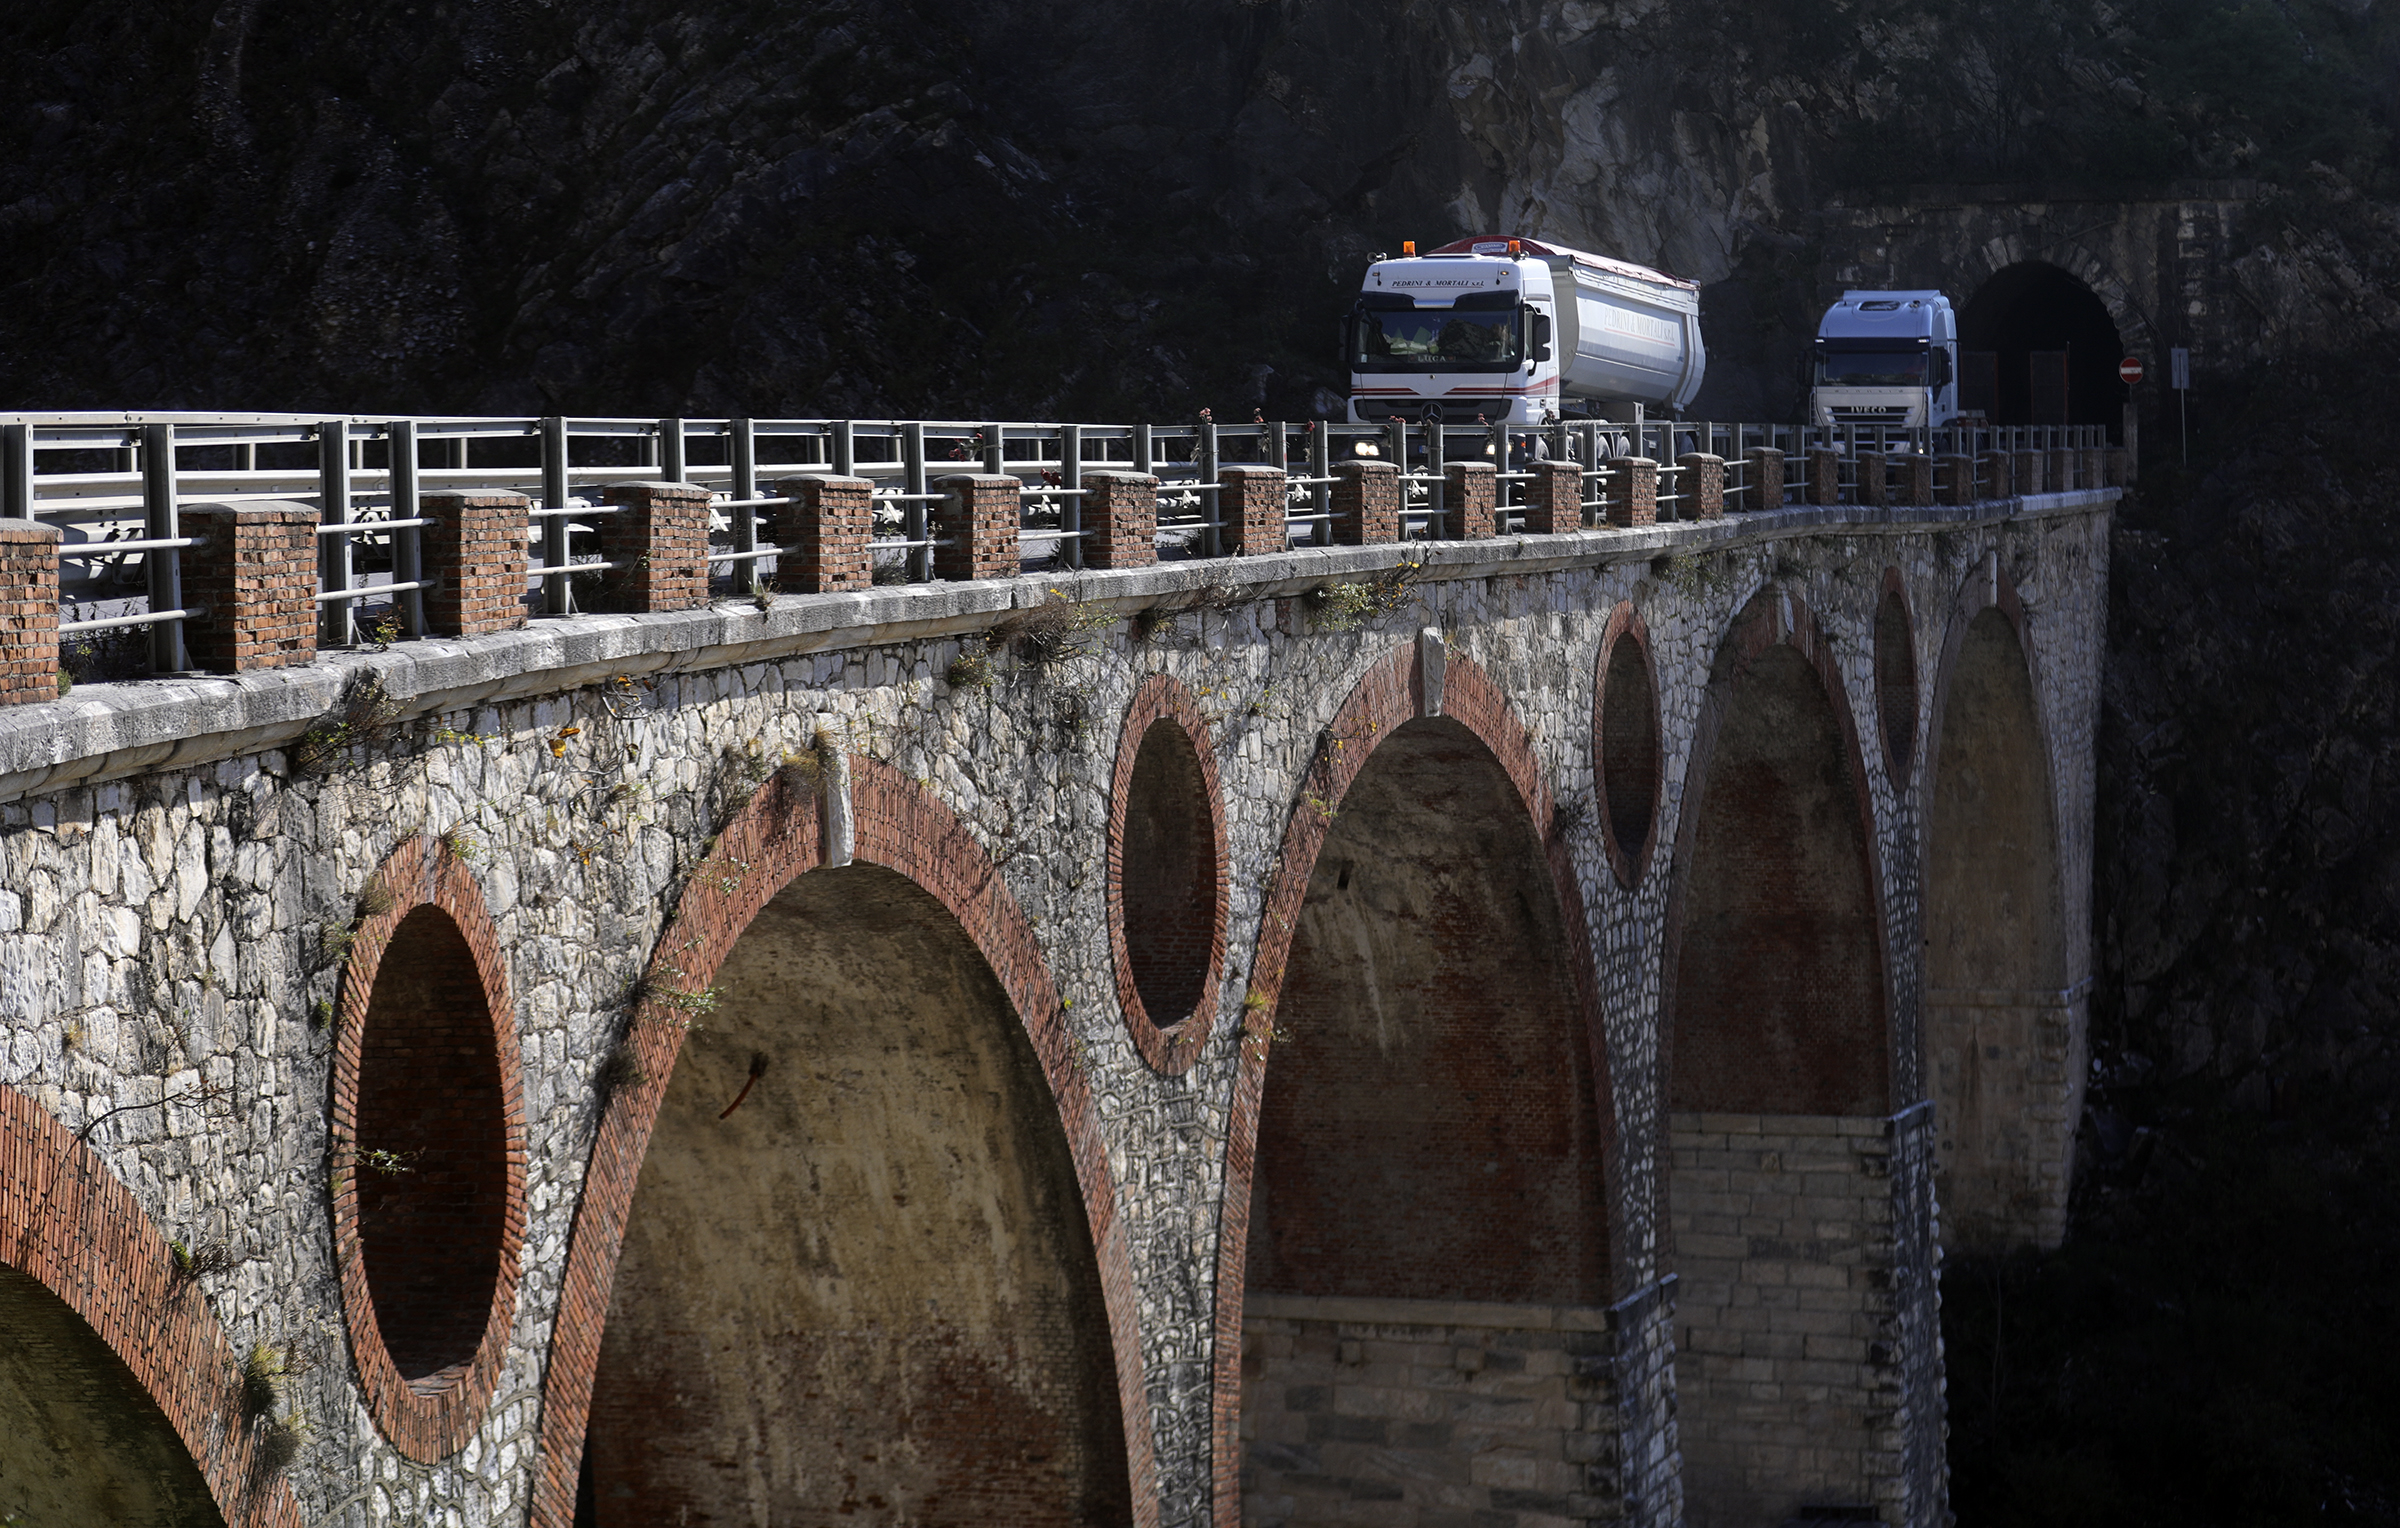 Trucks travel over a bridge at the base of marble quarries in Carrara, Italy, on Thursday, Nov. 15, 2018.